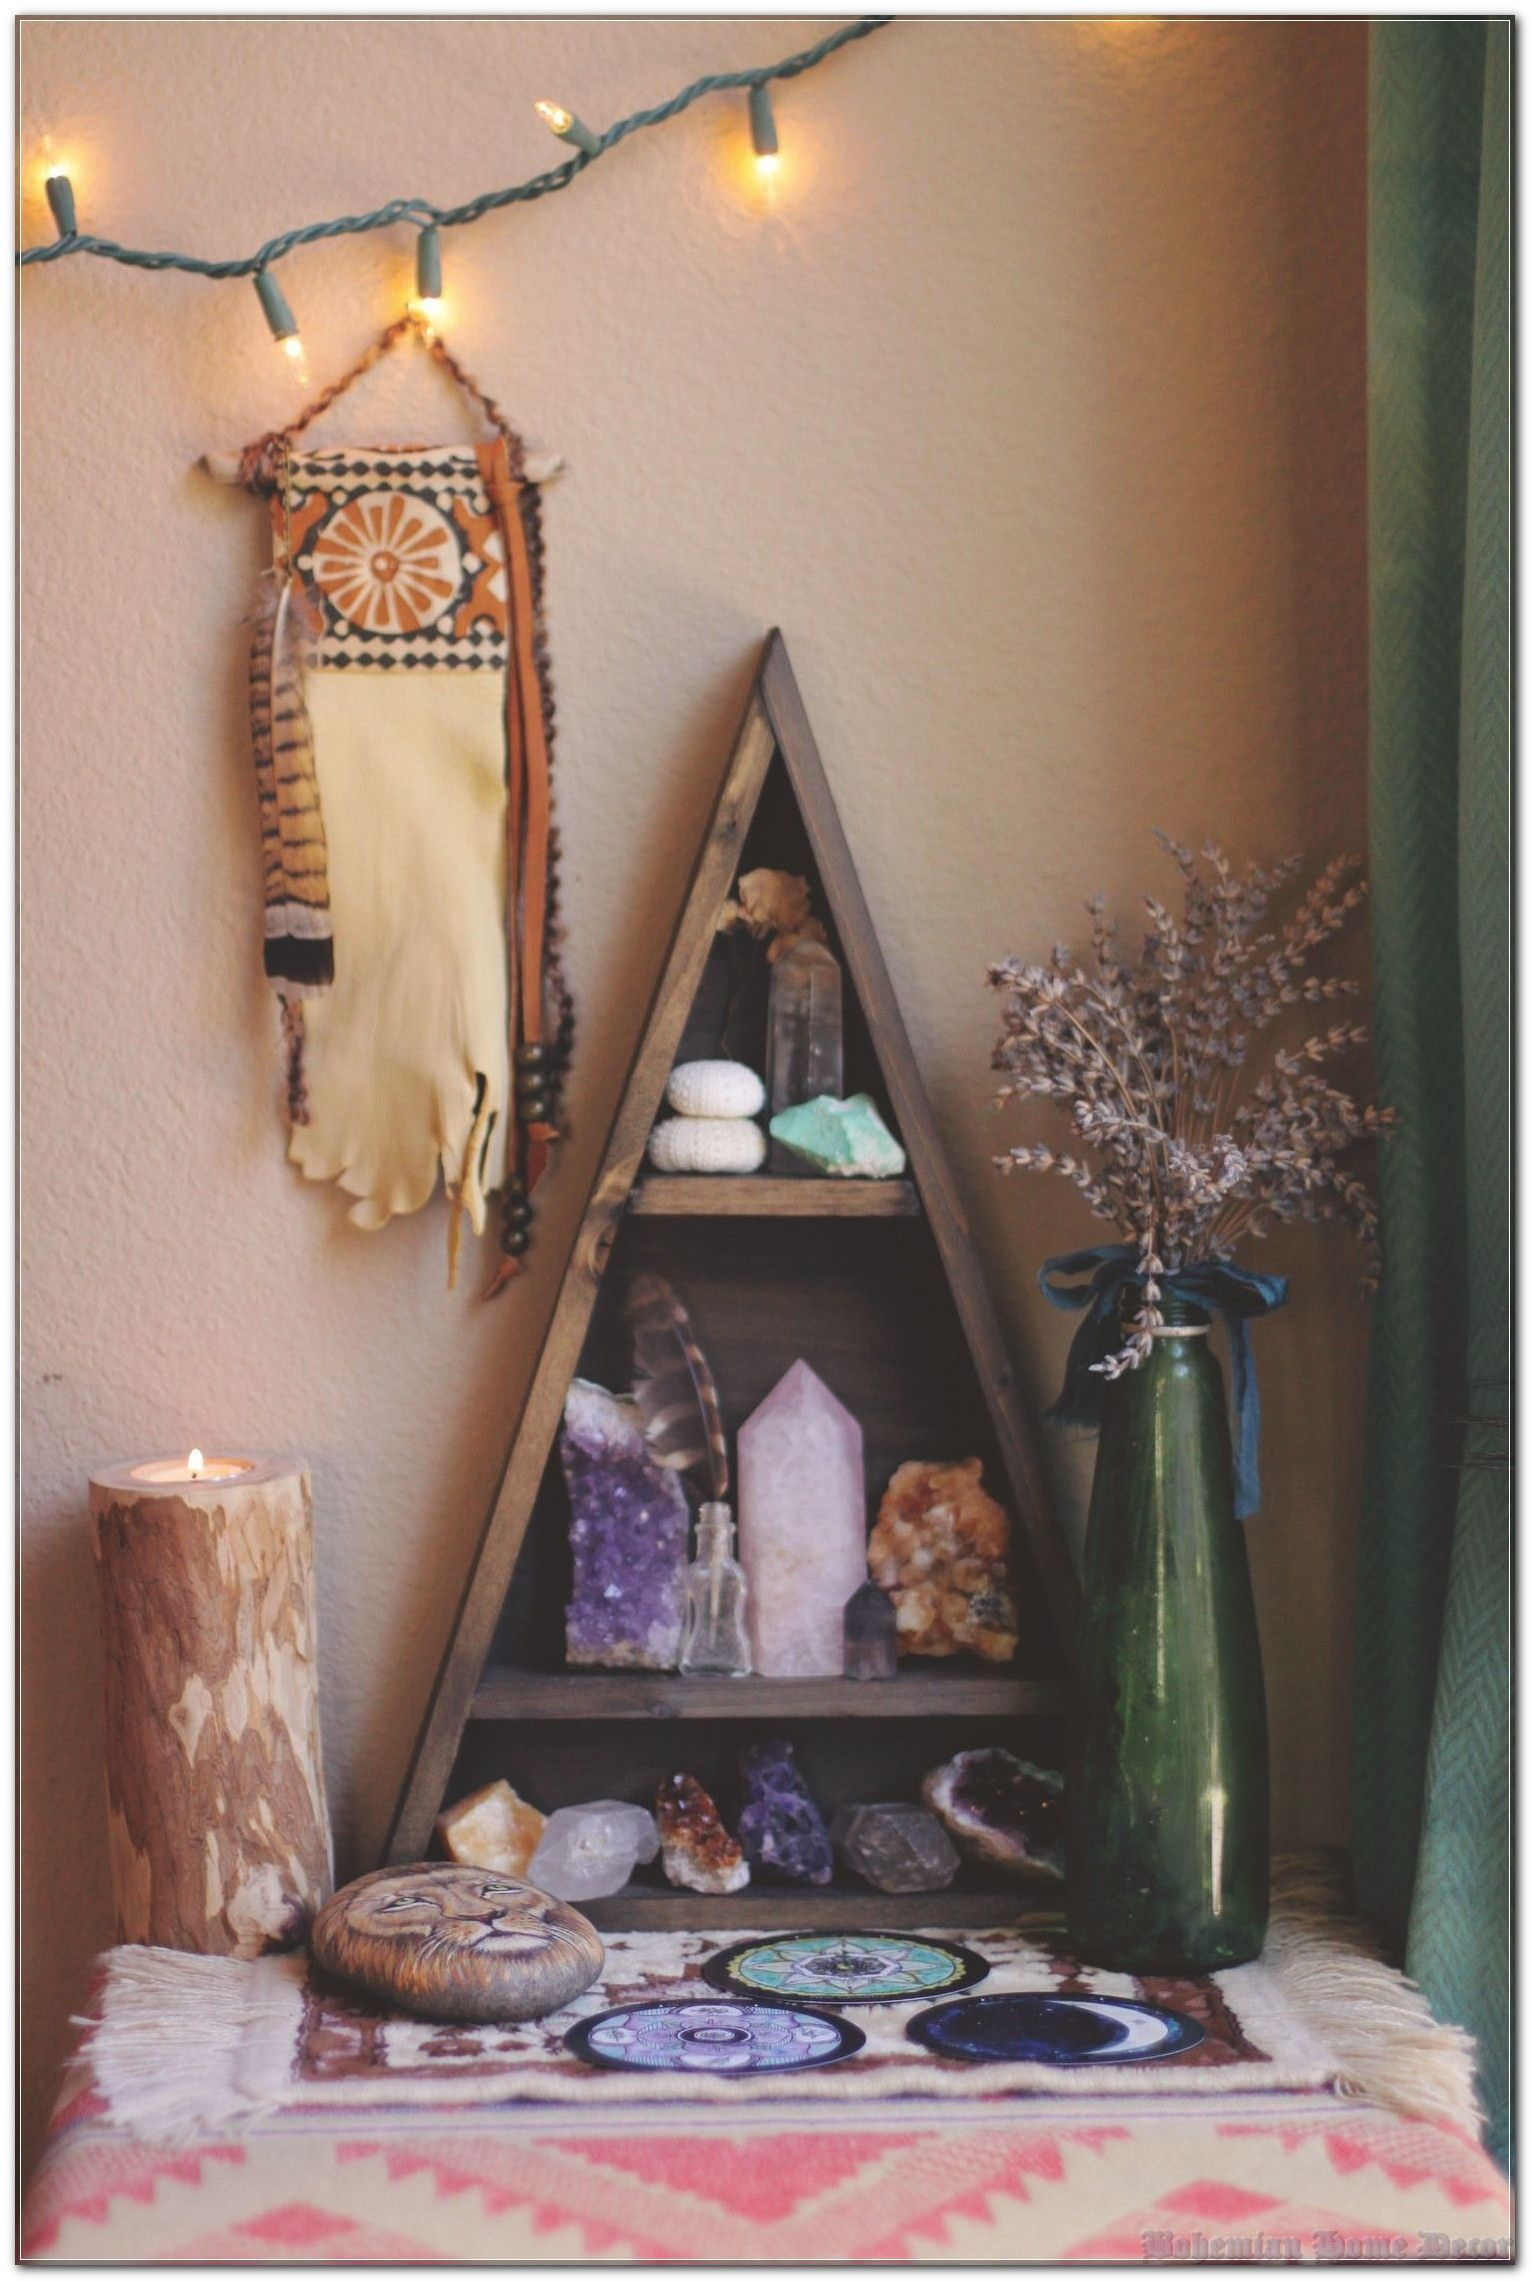 Bohemian Home Decor: Are You Prepared For A Good Thing?